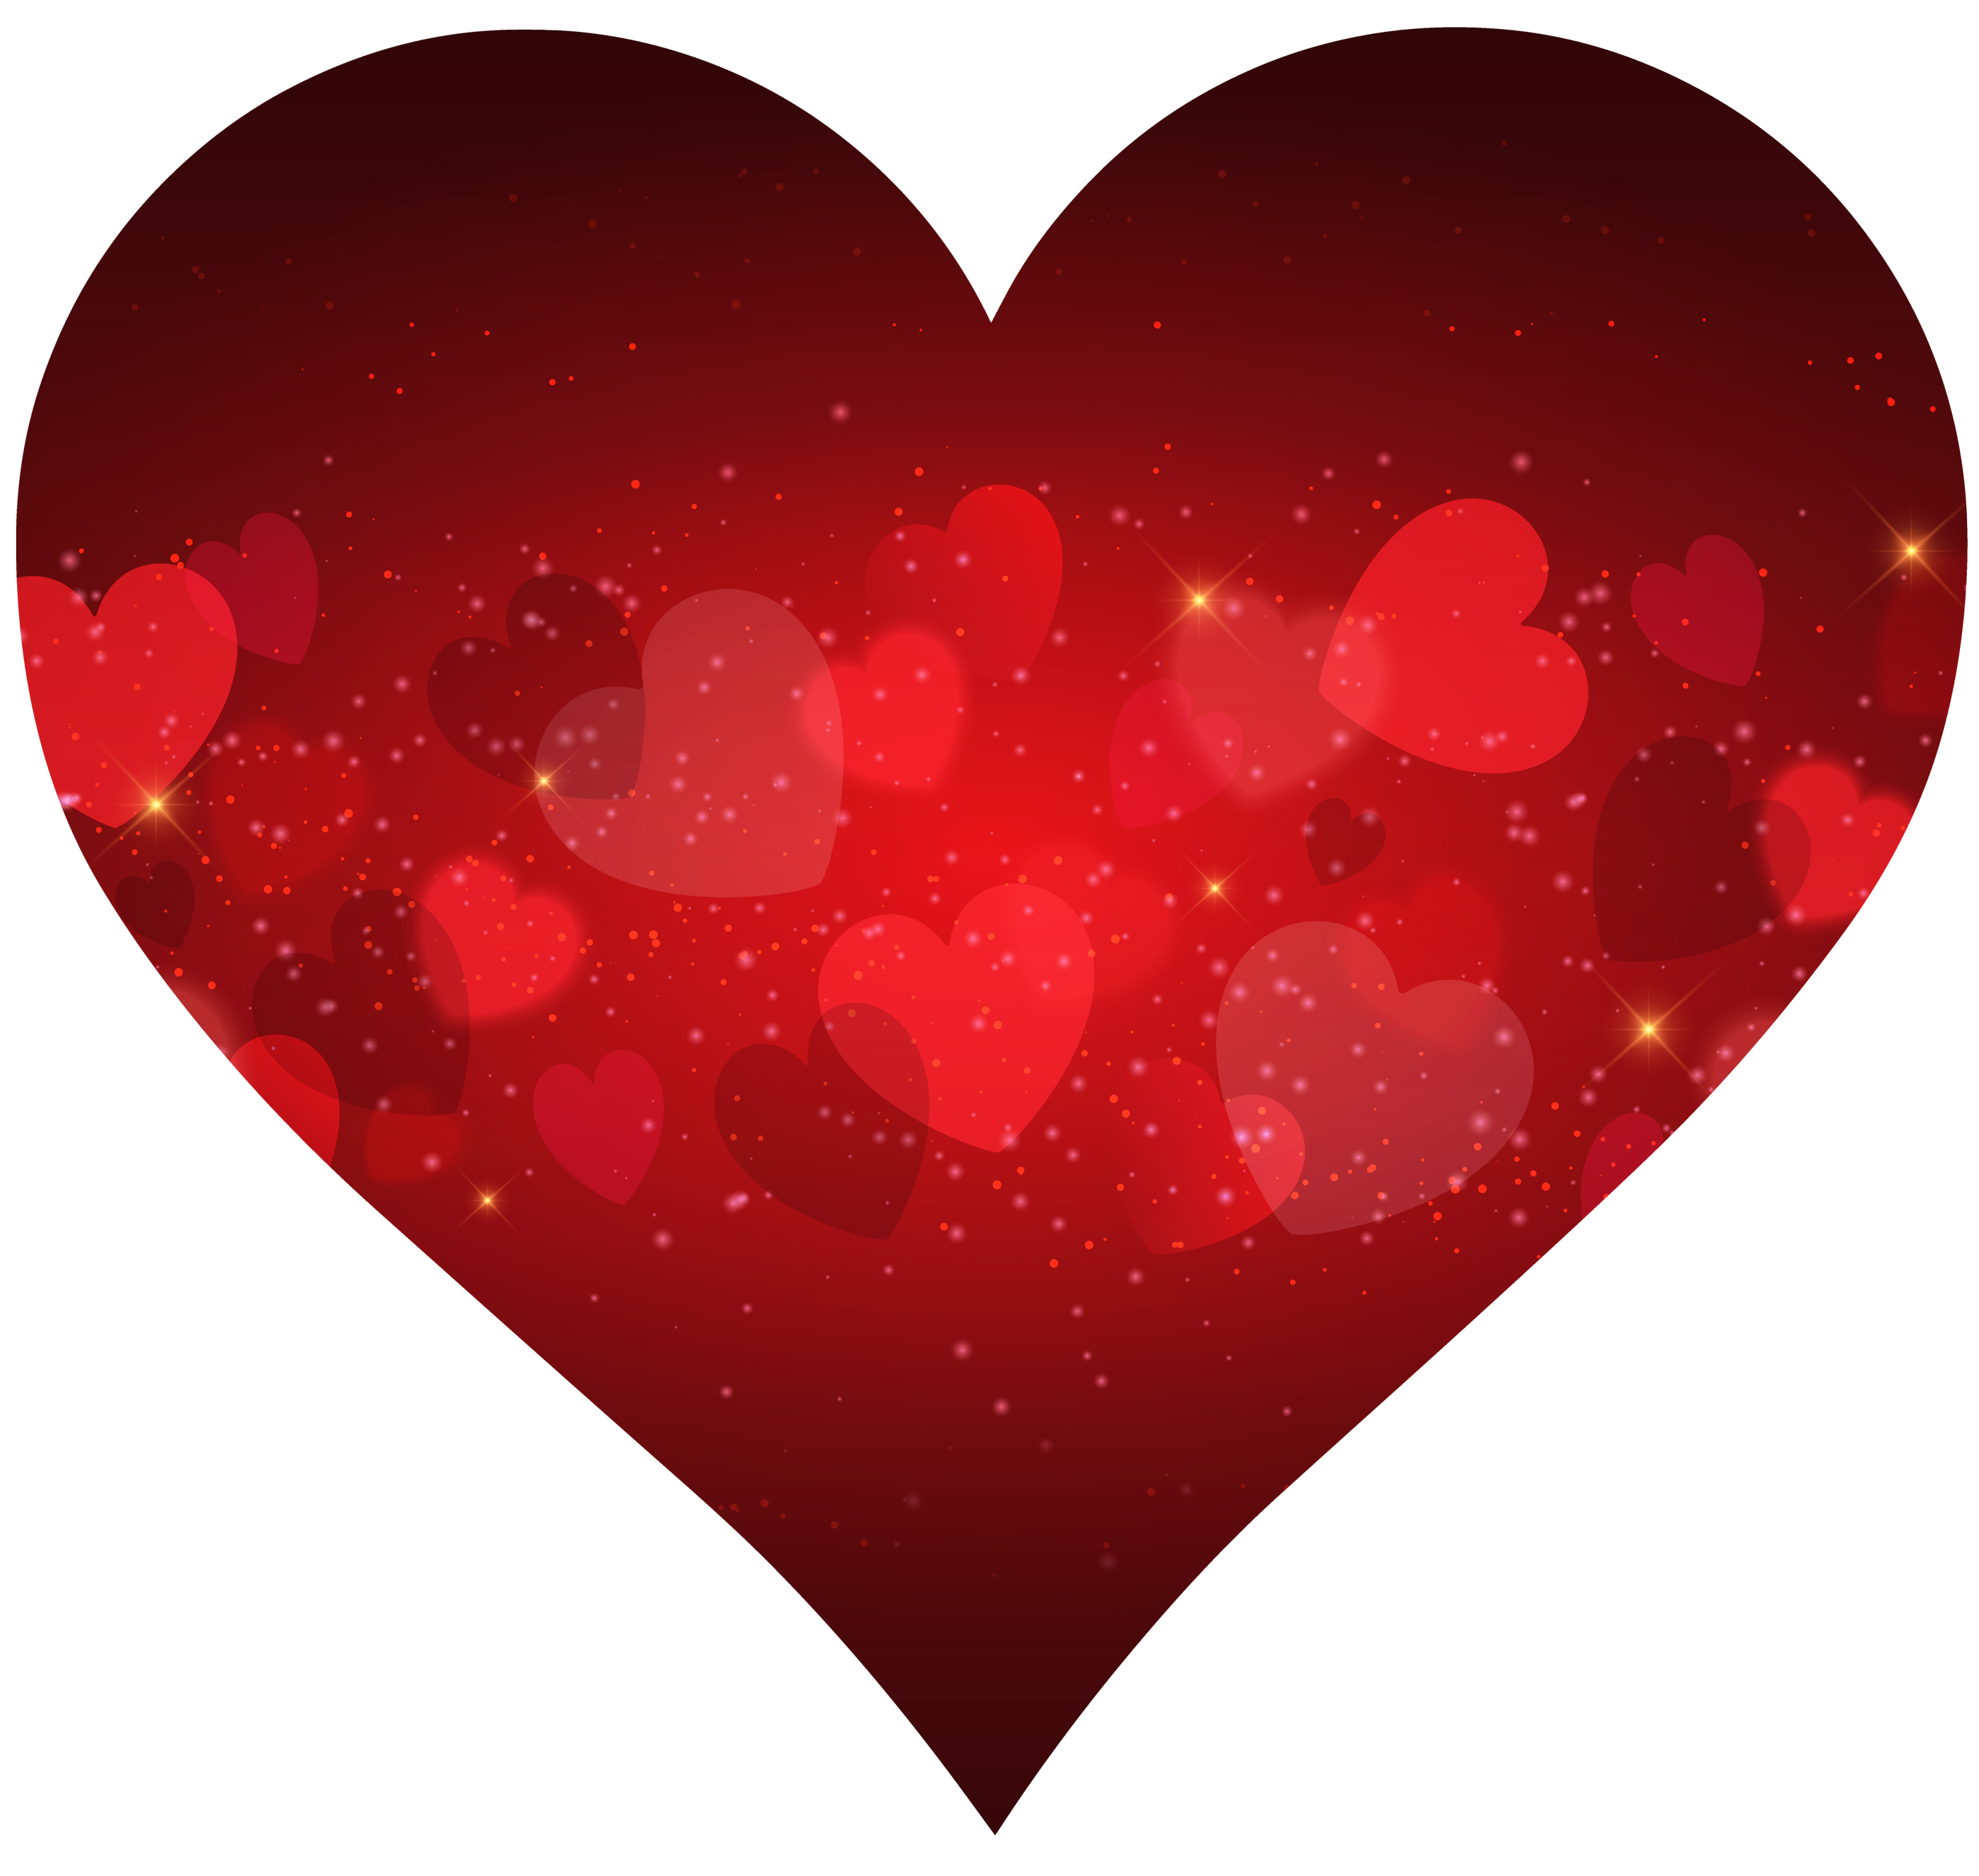 Red heart png. Image pngpix